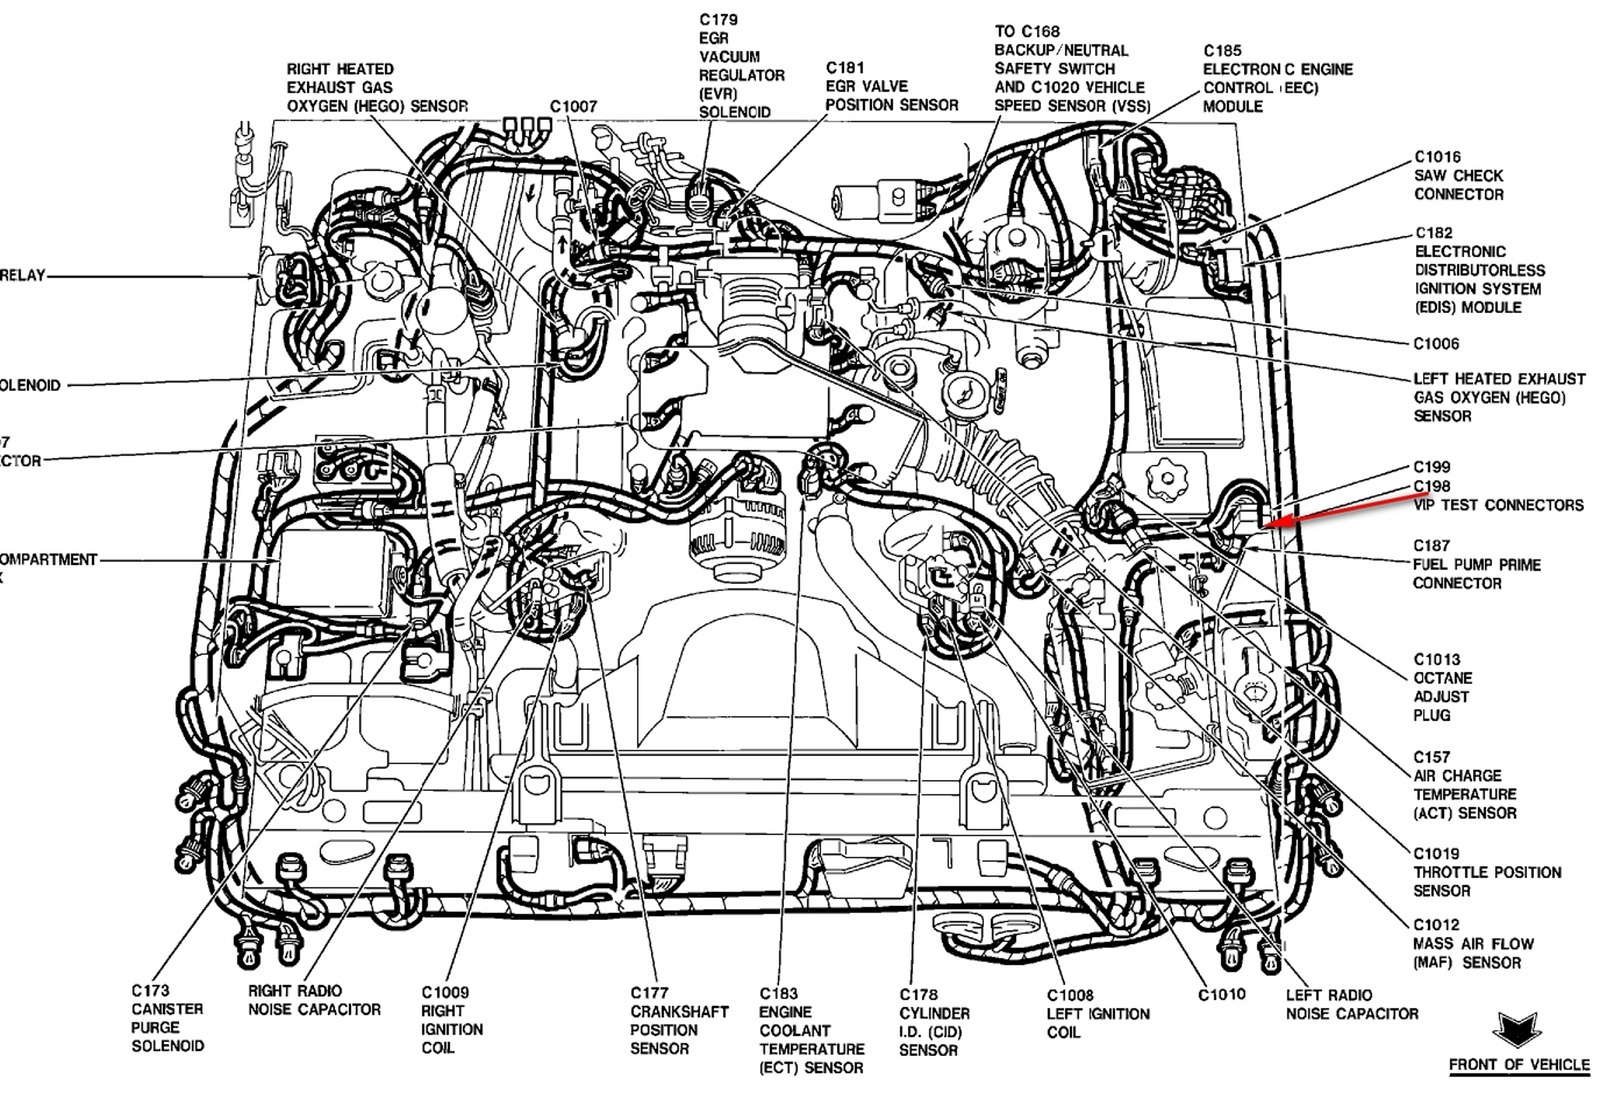 P0450 kia furthermore 2003 Kia Sorento Engine Diagram also 2008 Dodge Caravan Crank Sensor Location further How To Change Transfer Case Fluid On 03 Range Rover additionally 6vber Kia Optima Lx 2004 Kia Optima 2 4l Changing. on 2004 kia rio engine sensor switch